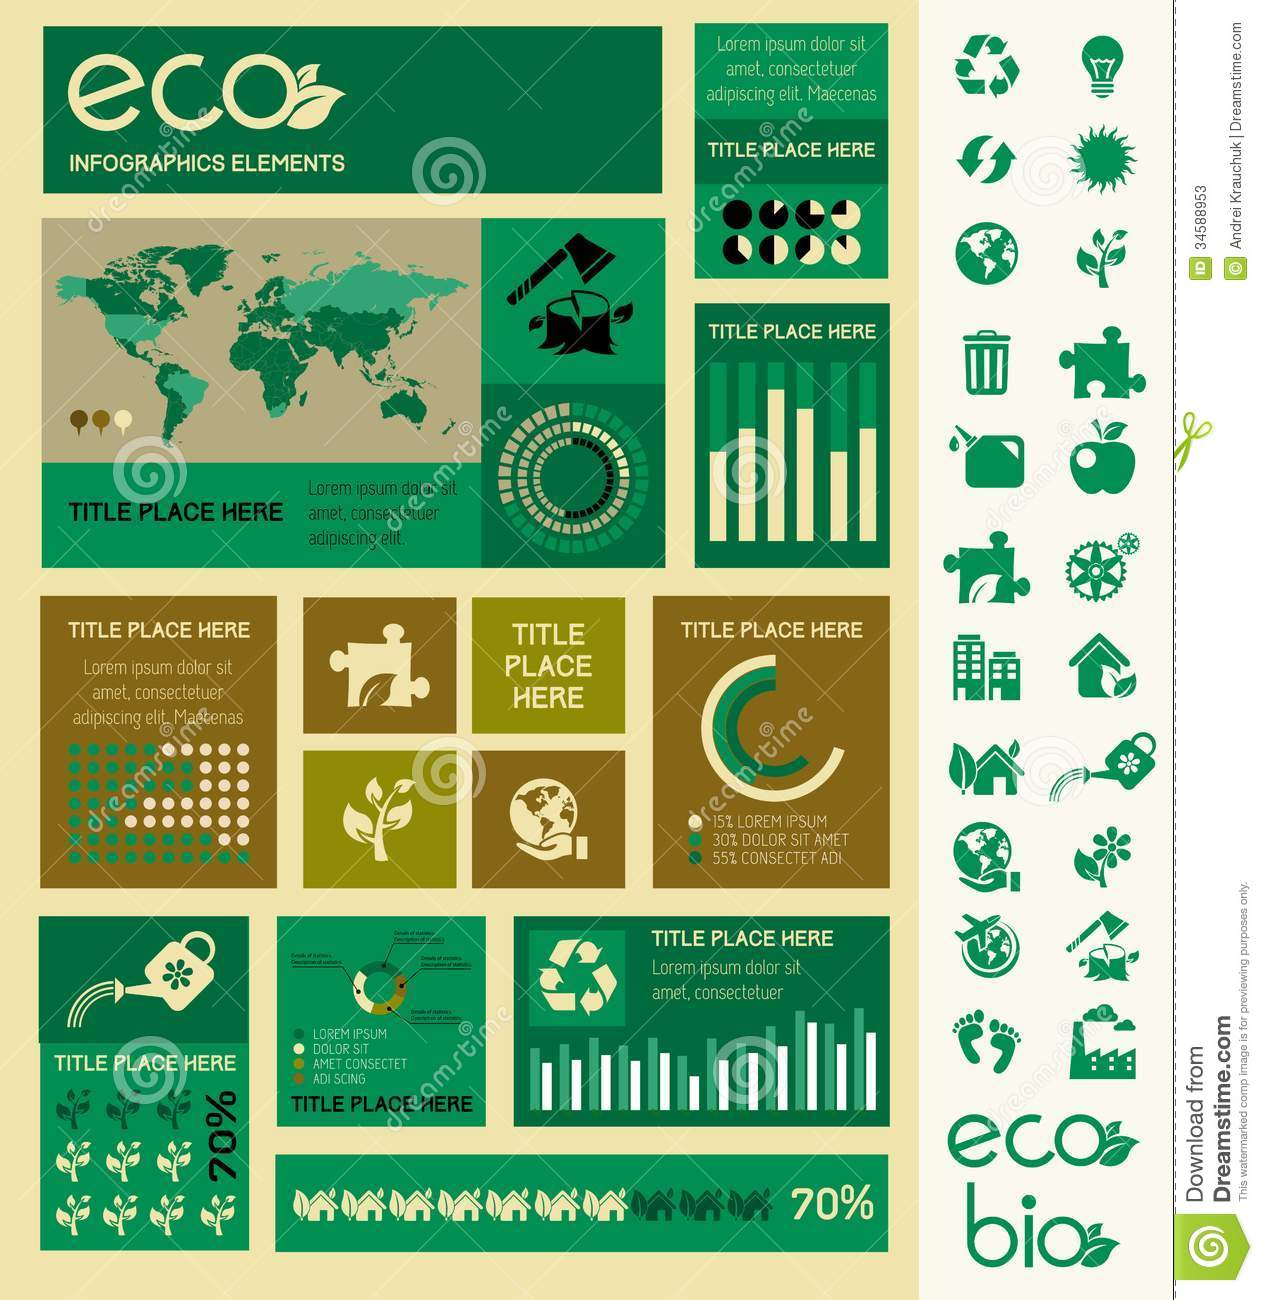 Flat infographic elements opportunity to highlight any country on the